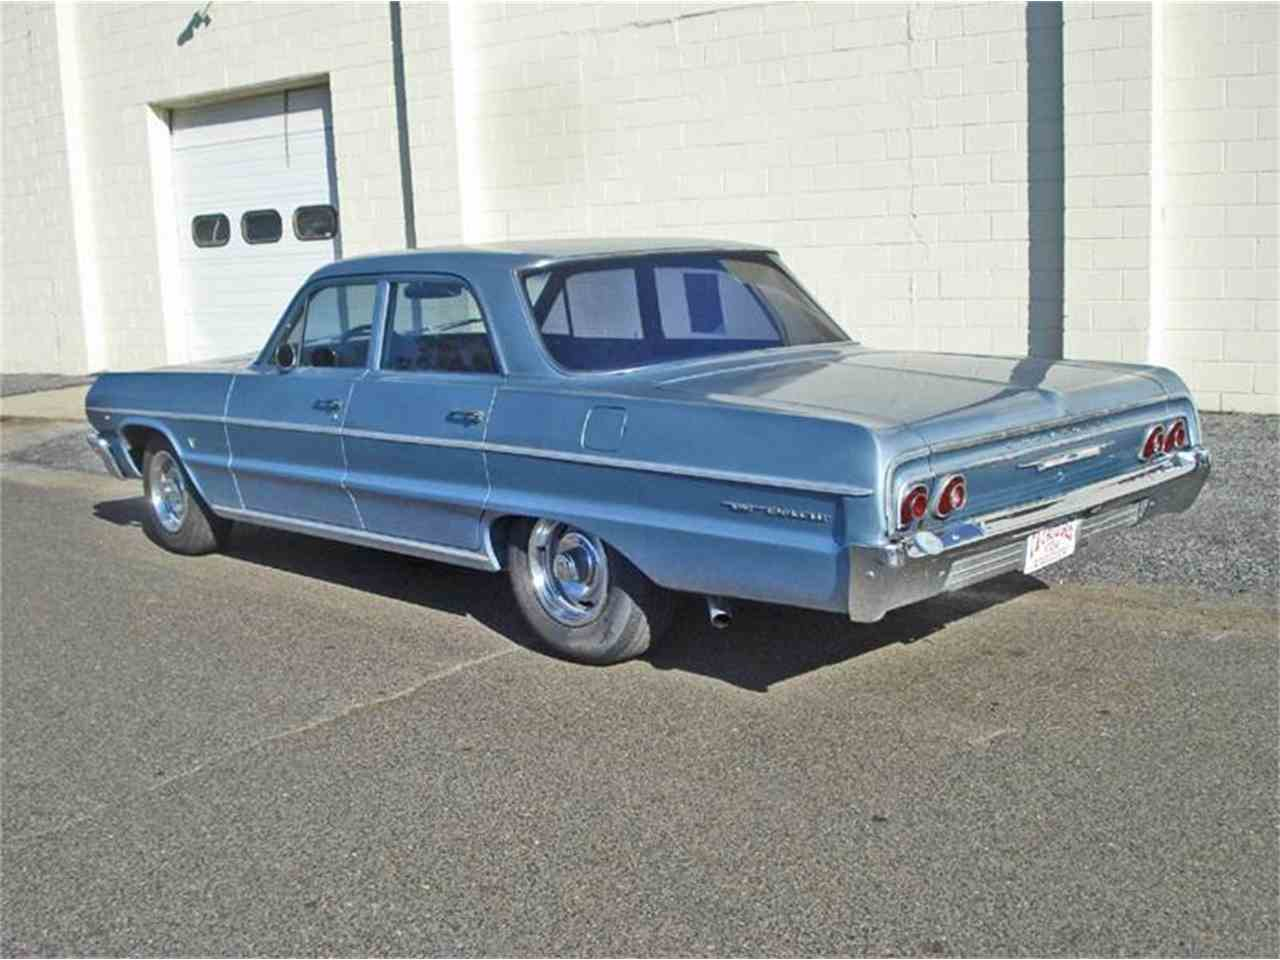 All Chevy chevy bel air 1964 : All Chevy » 1964 Chevy Bel Air - Old Chevy Photos Collection, All ...